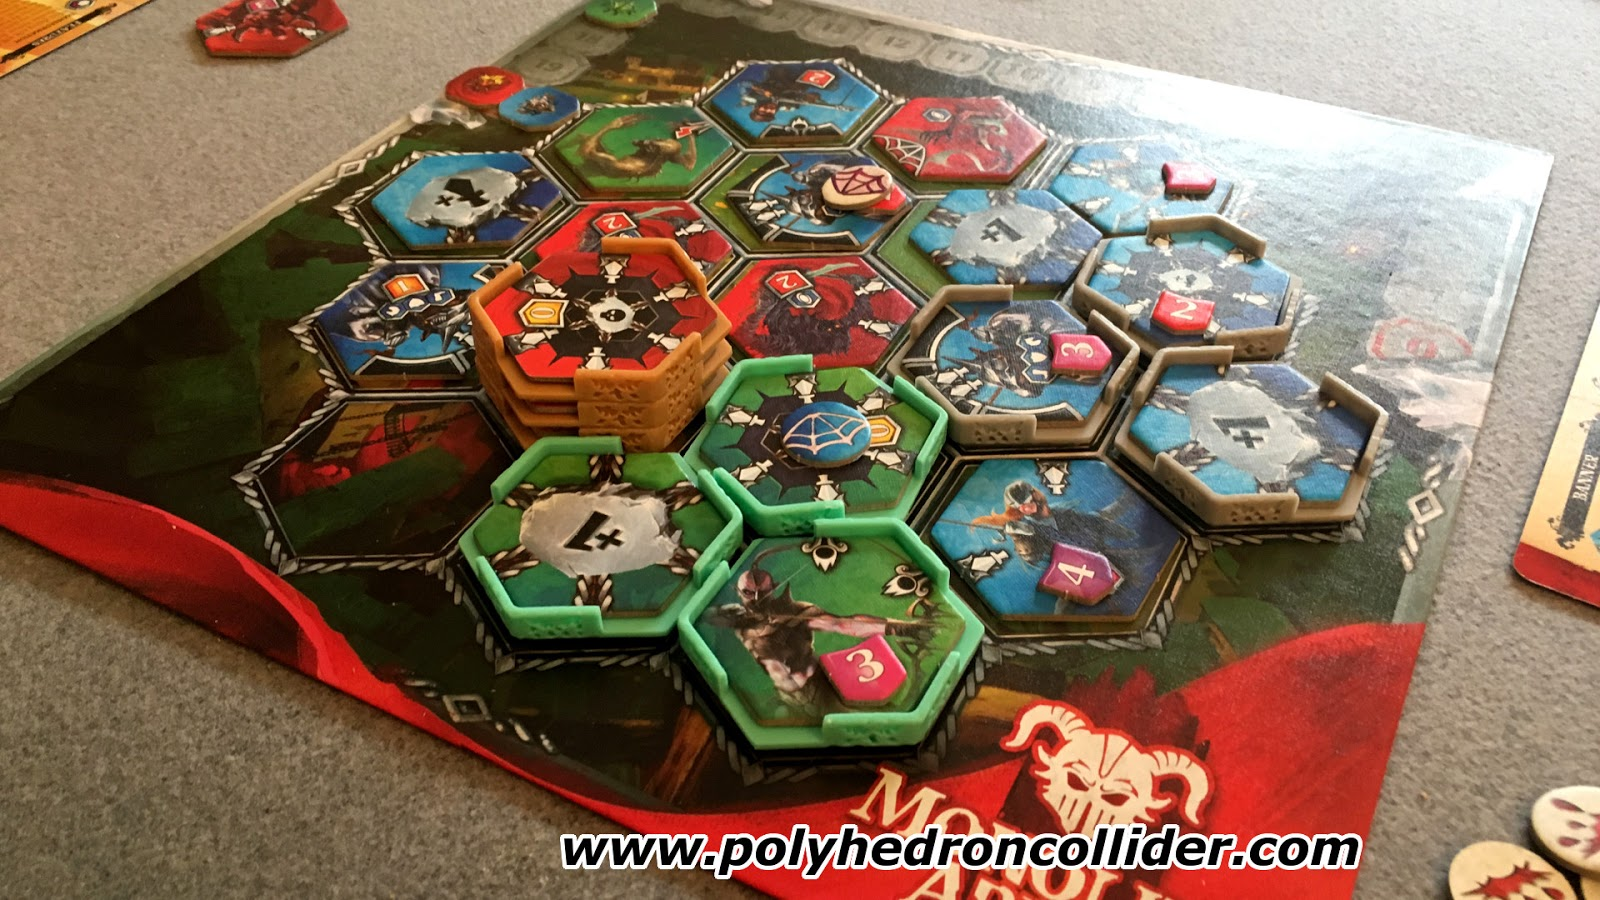 Monolith Arena Heuroshima Hex battle game review